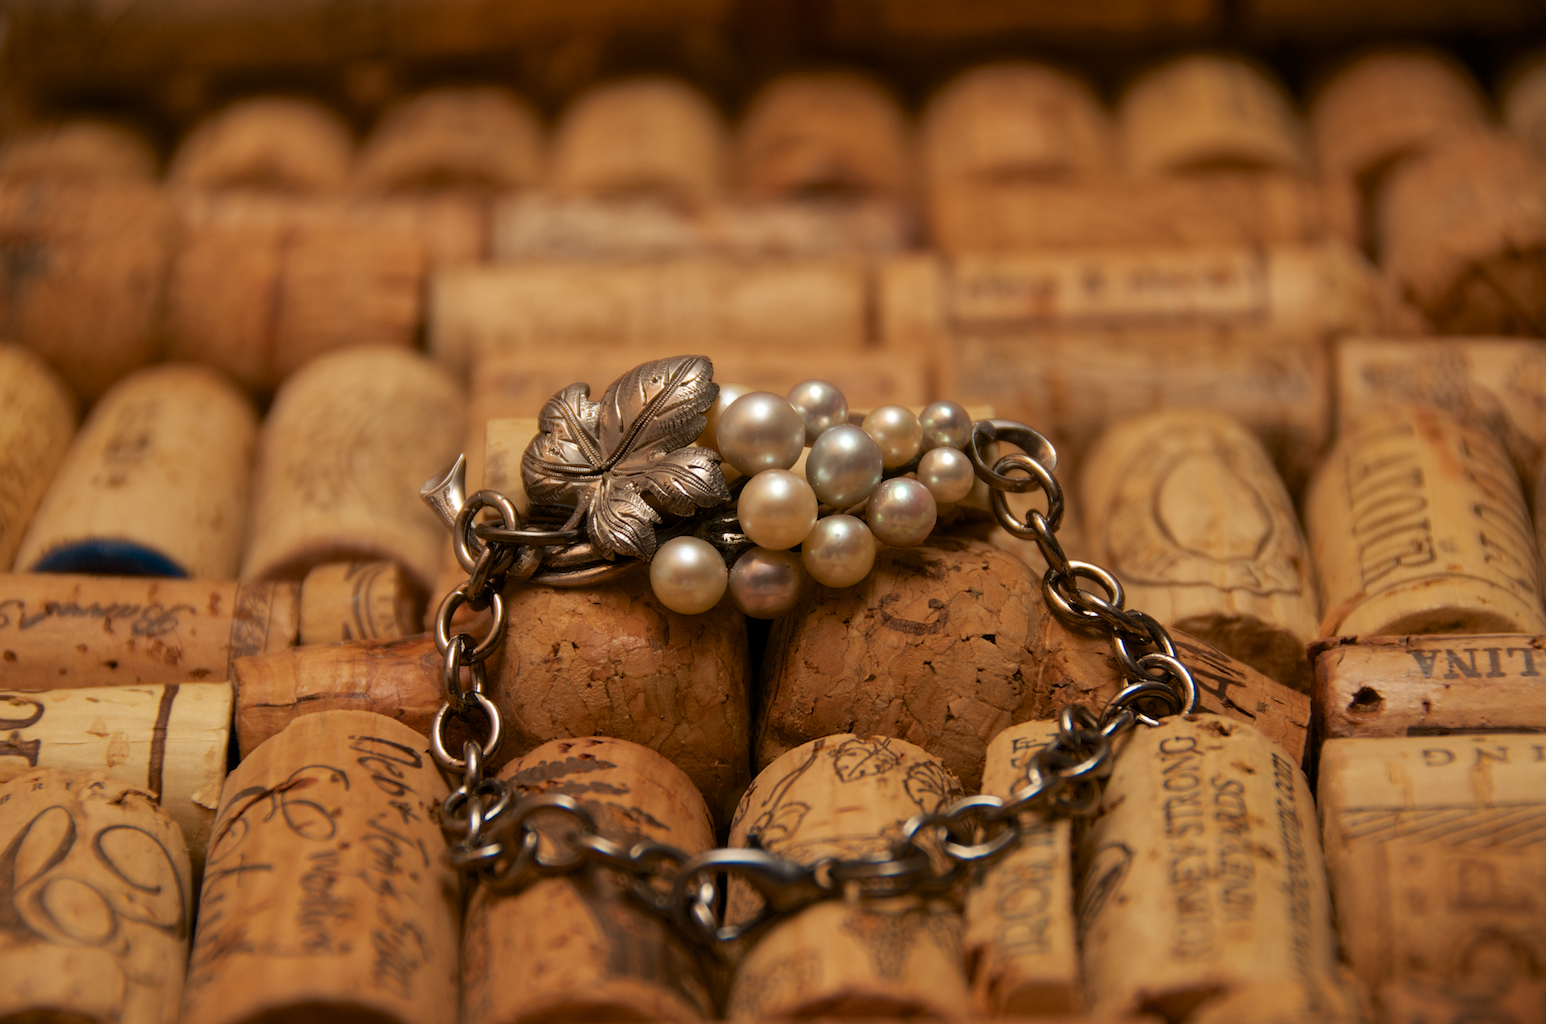 A repeat client returned with a beautiful pin that she'd inherited from her grandmother-in-law. Vintage by Cathy restored it and created this exquisite bracelet for her.